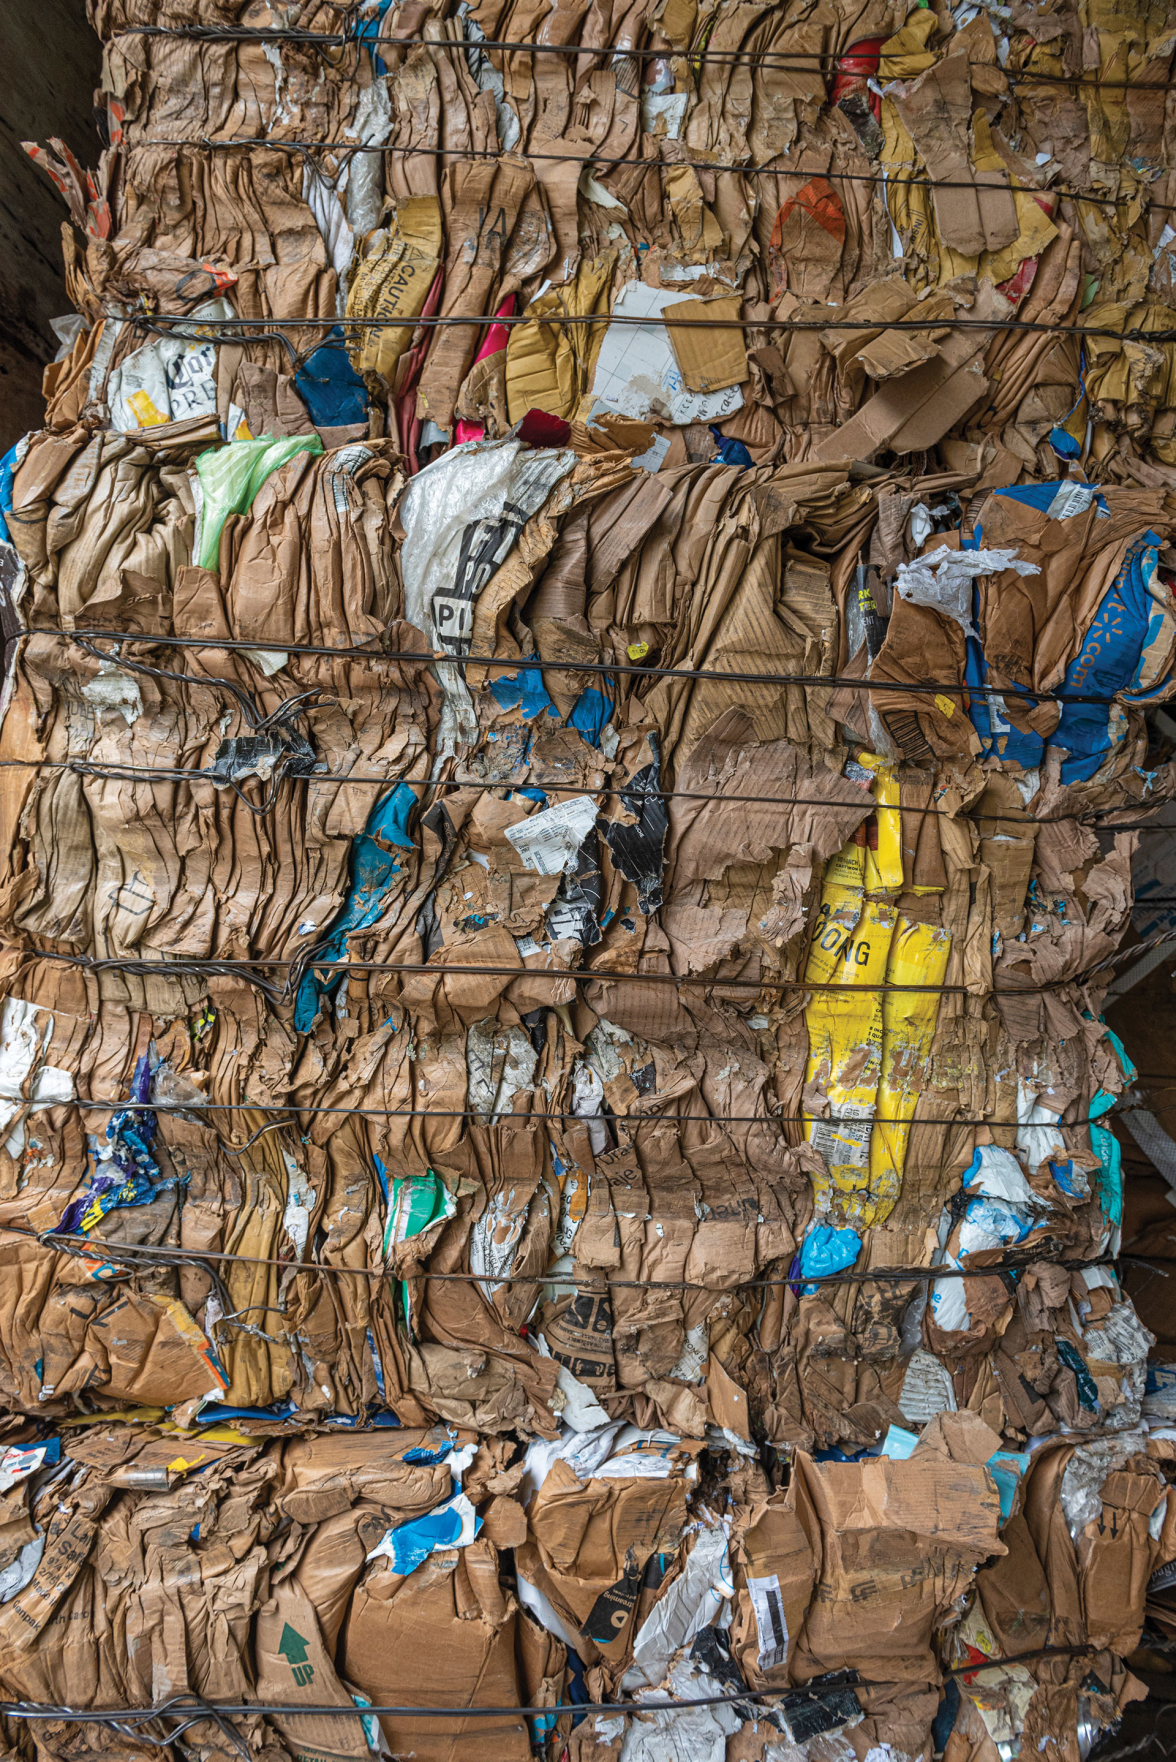 The Green Issue: So You Want to Recycle Responsibly